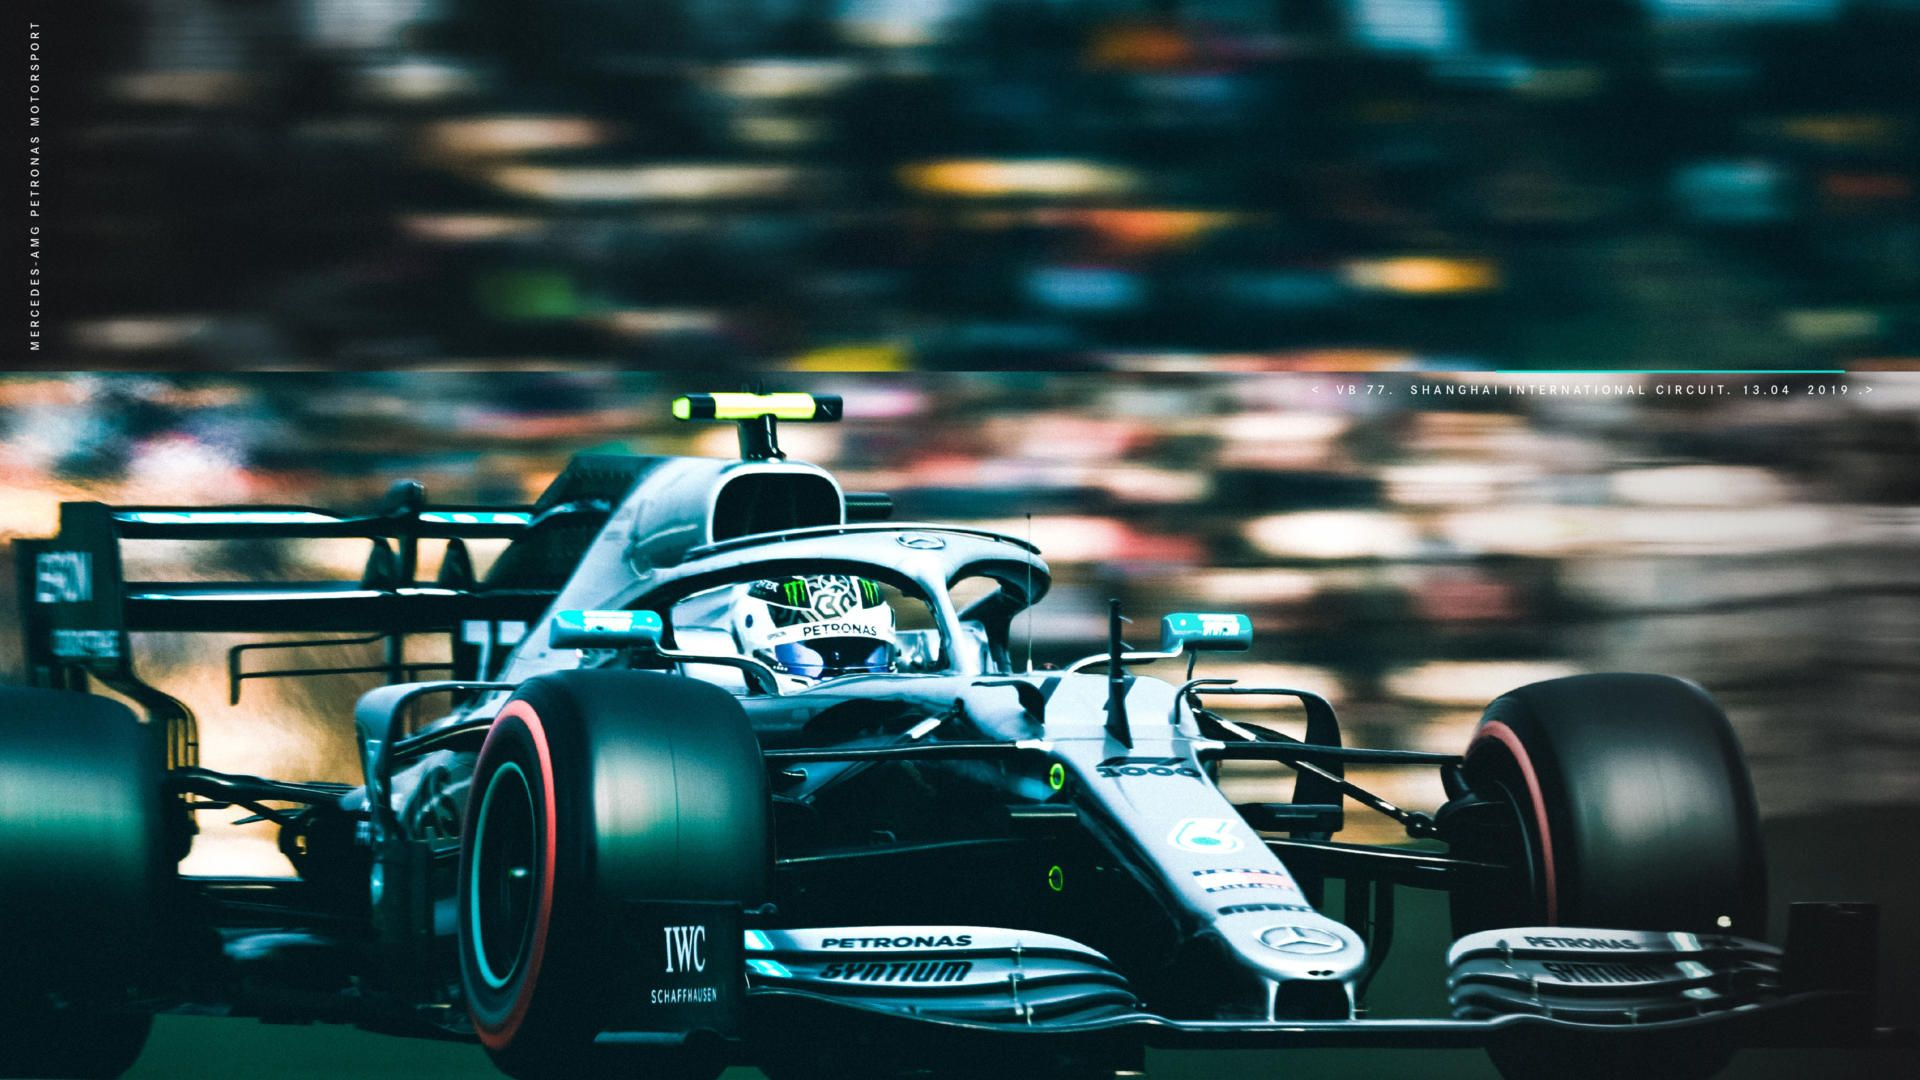 Mercedes F1 Wallpapers   Top Mercedes F1 Backgrounds 1920x1080